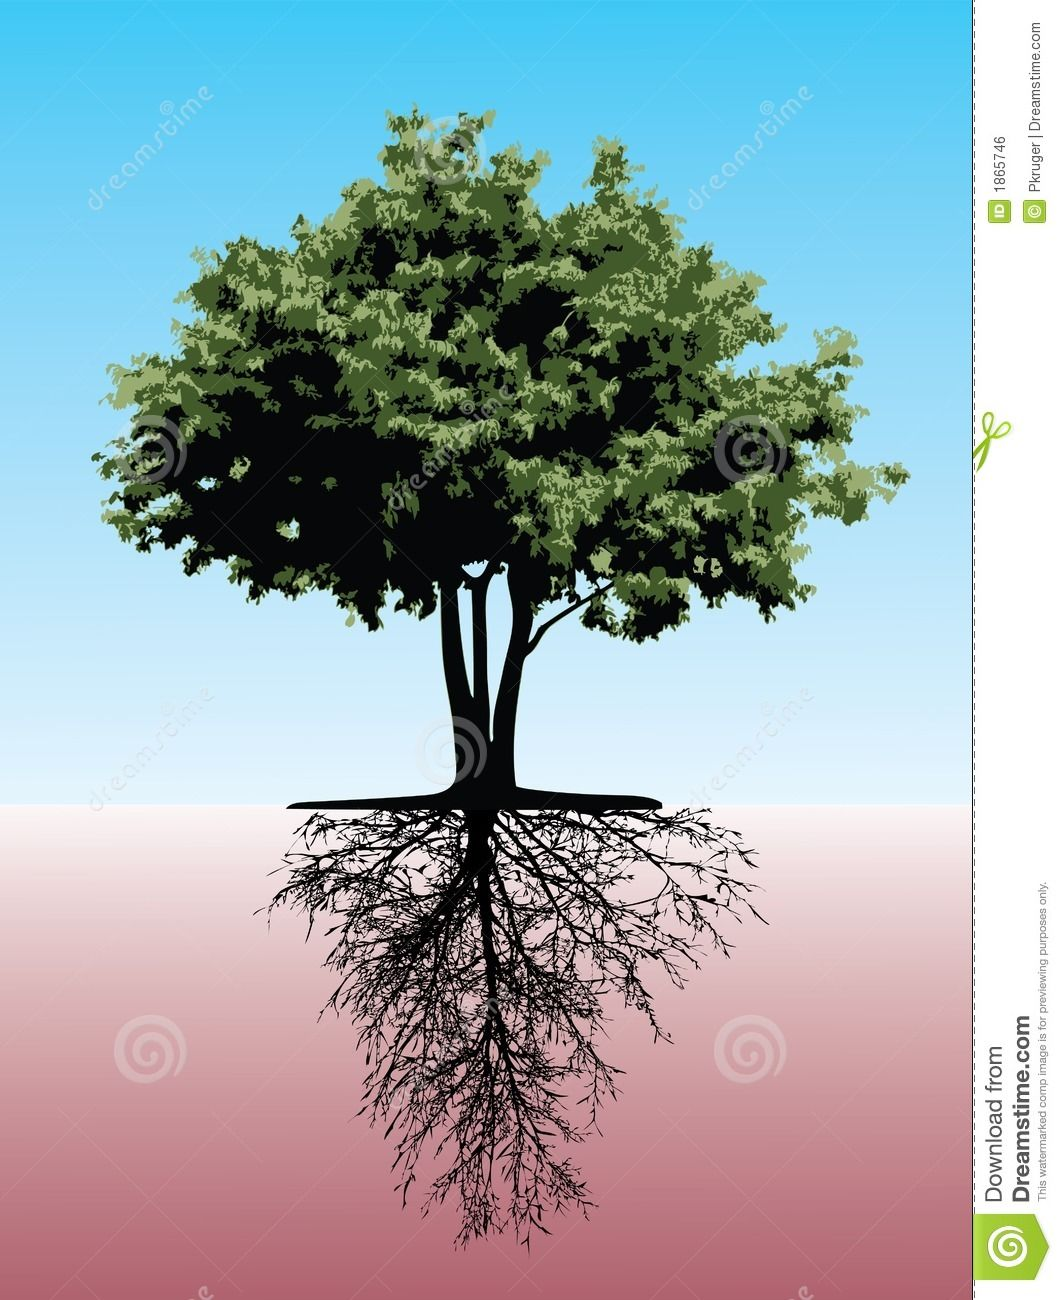 adm tree services on tree with roots tree drawing weird trees roots drawing tree with roots tree drawing weird